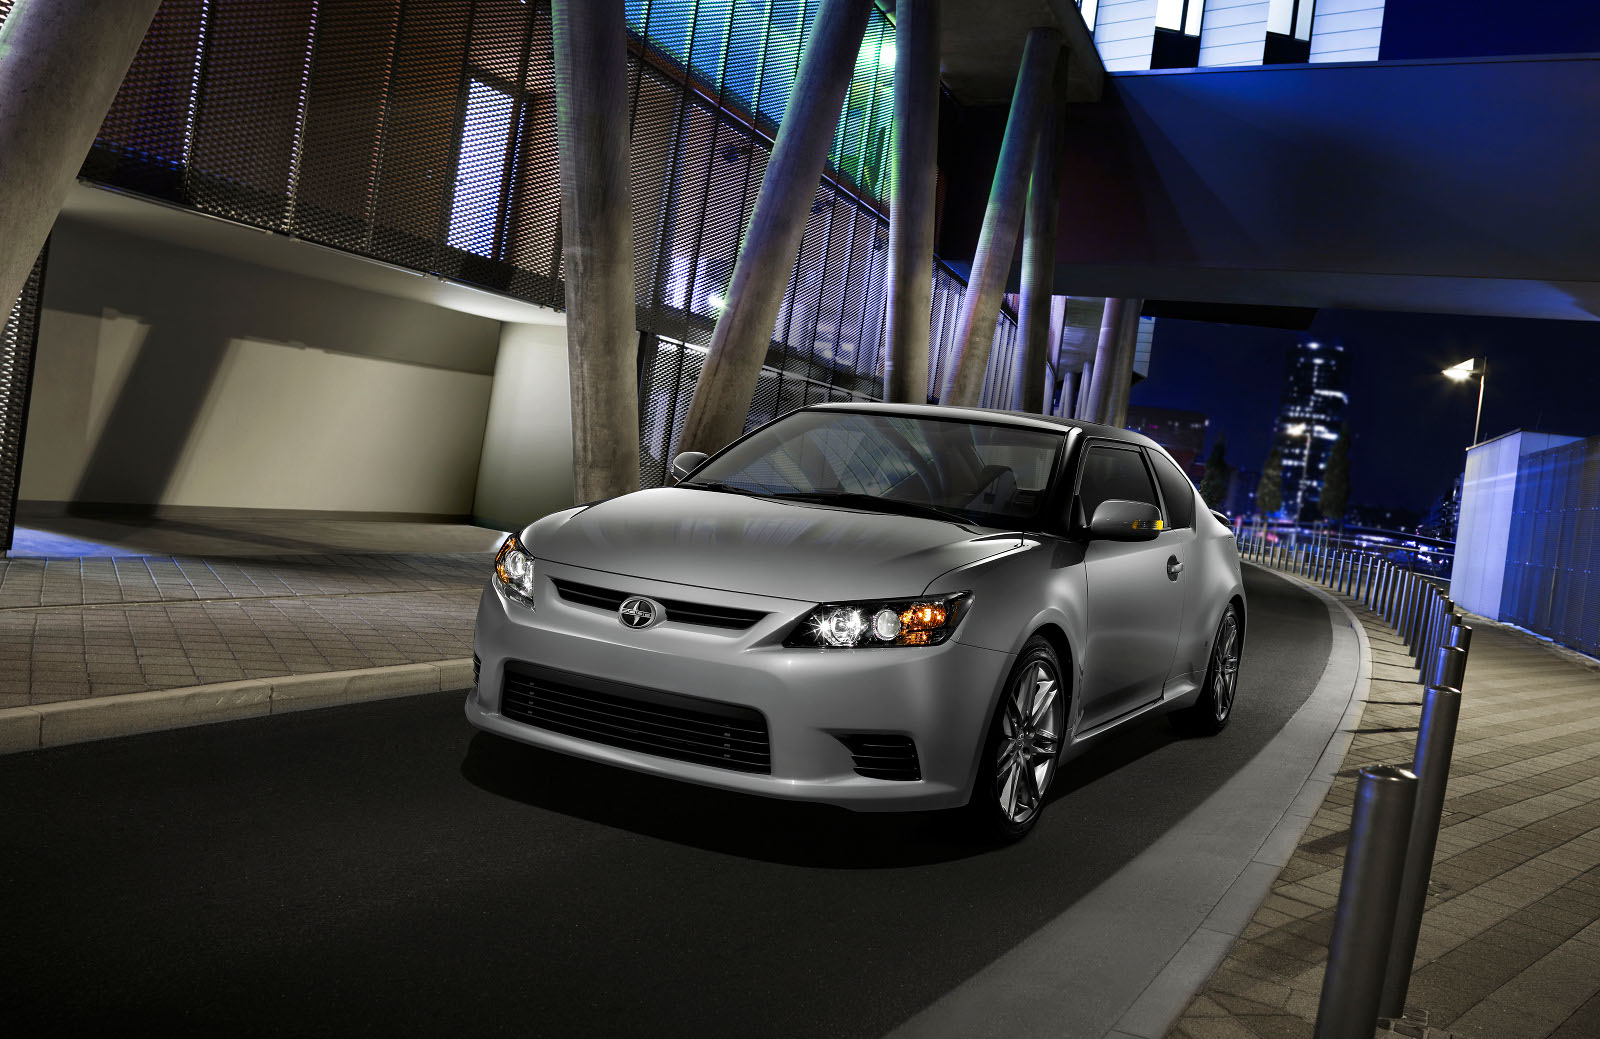 Scion scion tc horsepower : Scion tC | Autopedia | FANDOM powered by Wikia